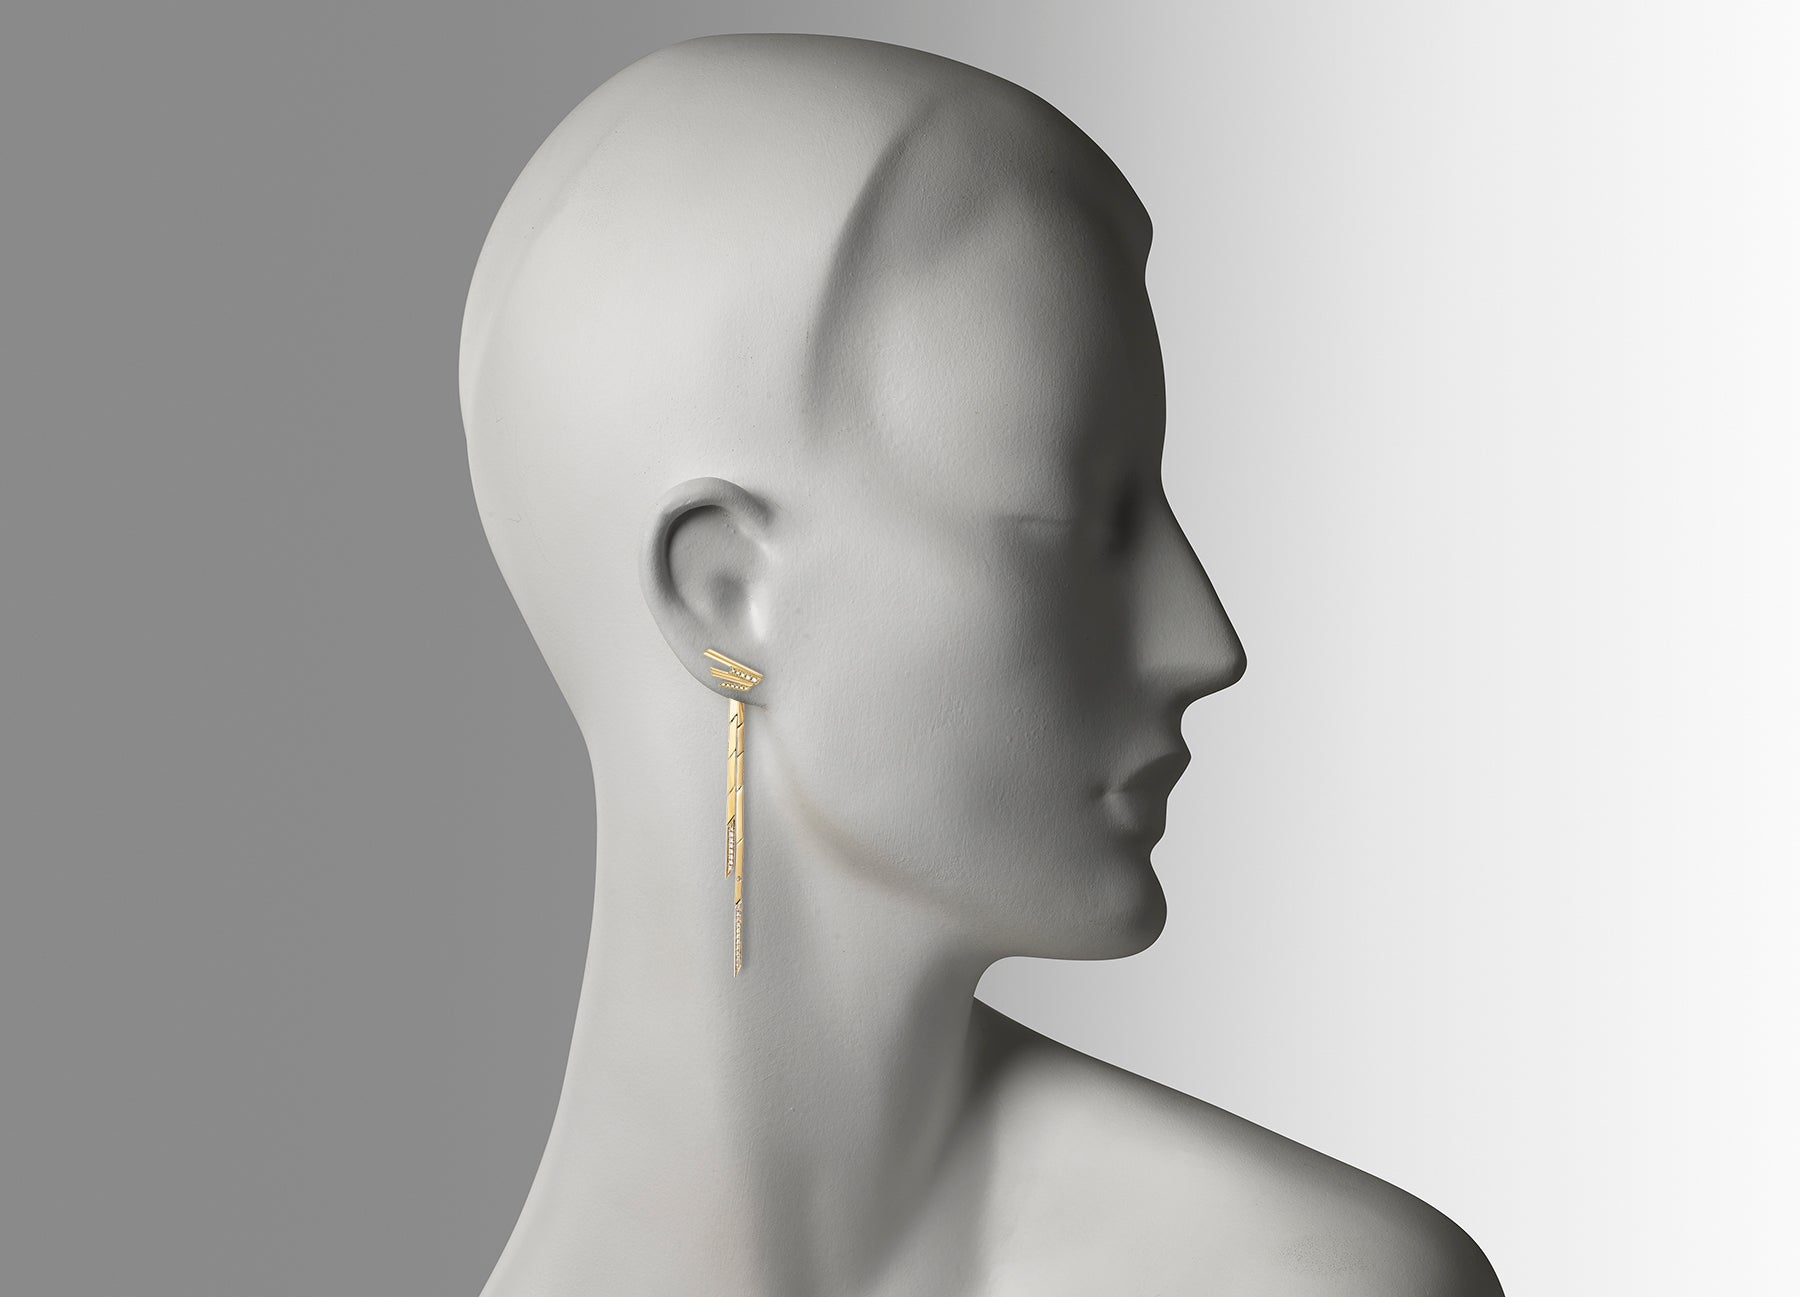 Mini Stellar Stud earrings with detachable drops in 18K yellow gold with white diamonds by Tomasz Donocik worn on mannequin